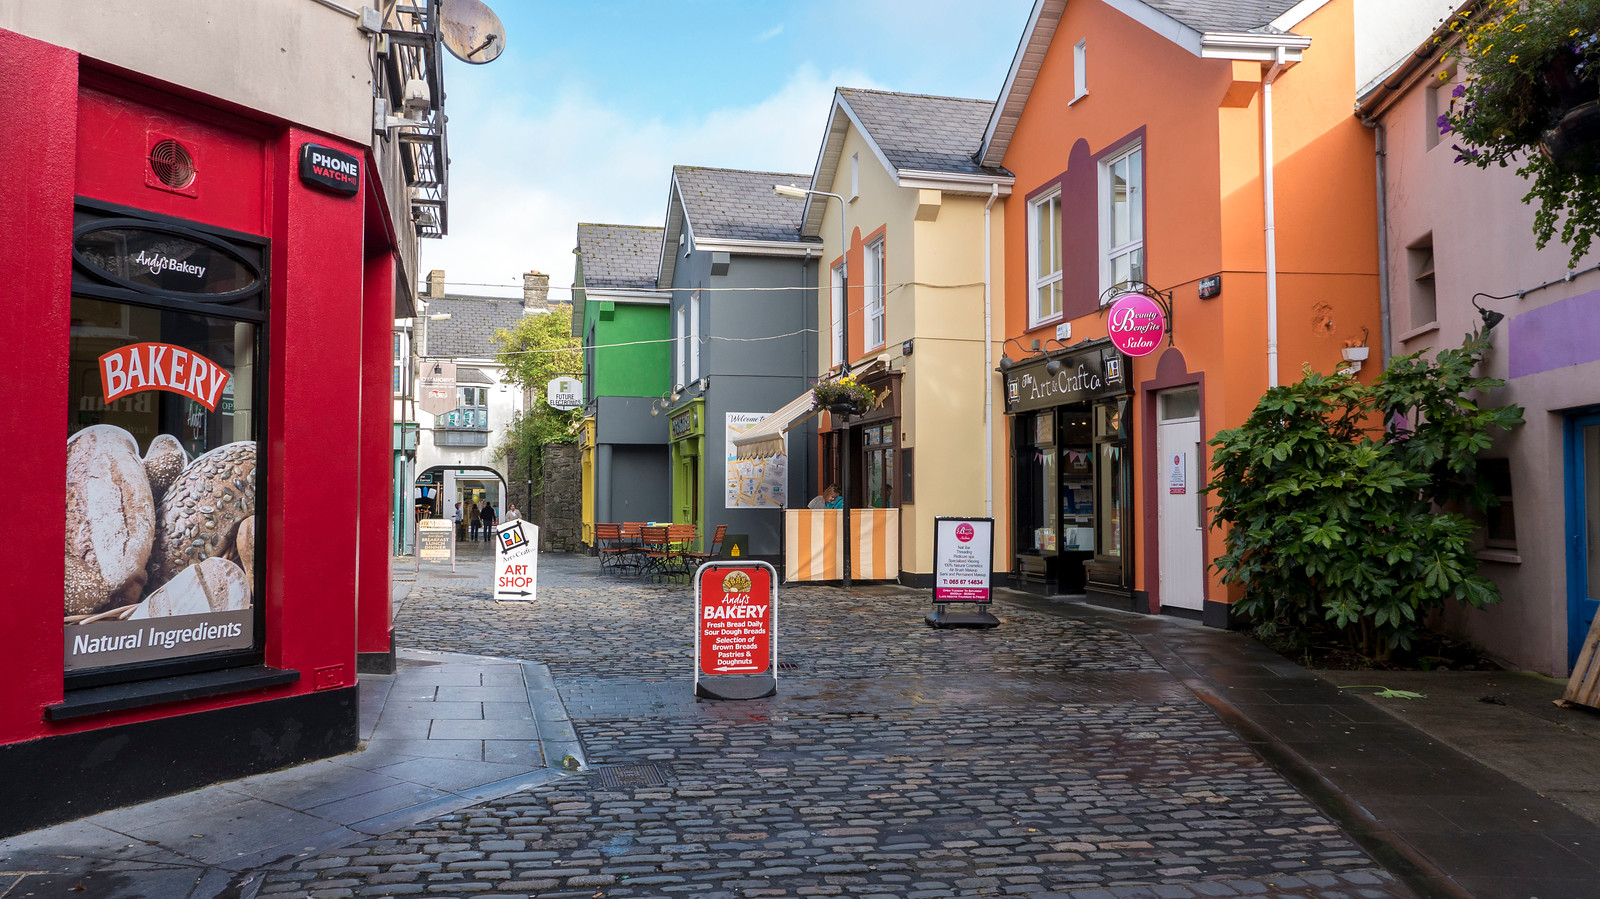 Ennis: A bright and colourful town